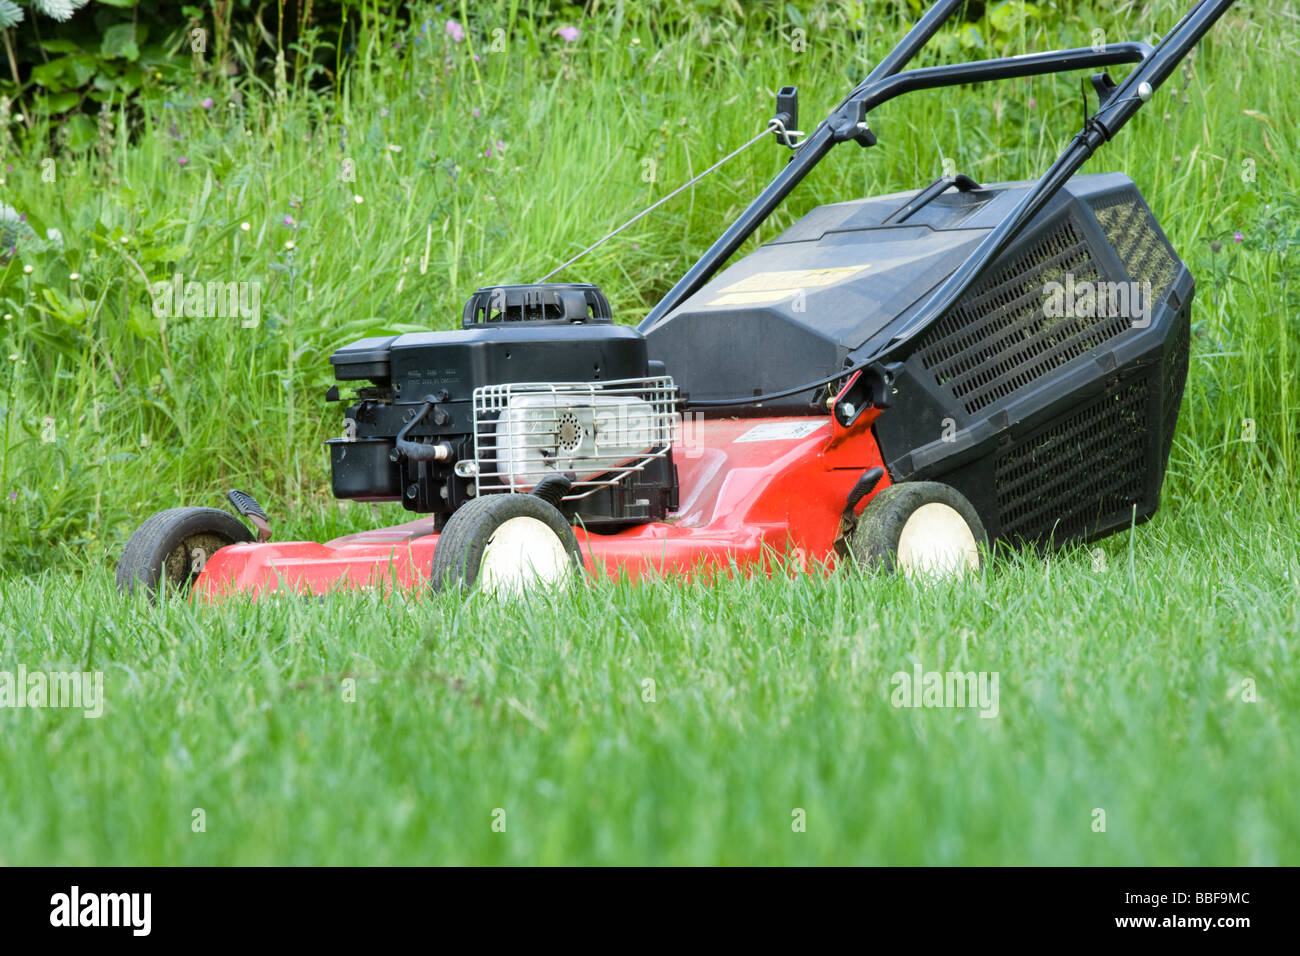 Lawnmower in long grass. - Stock Image